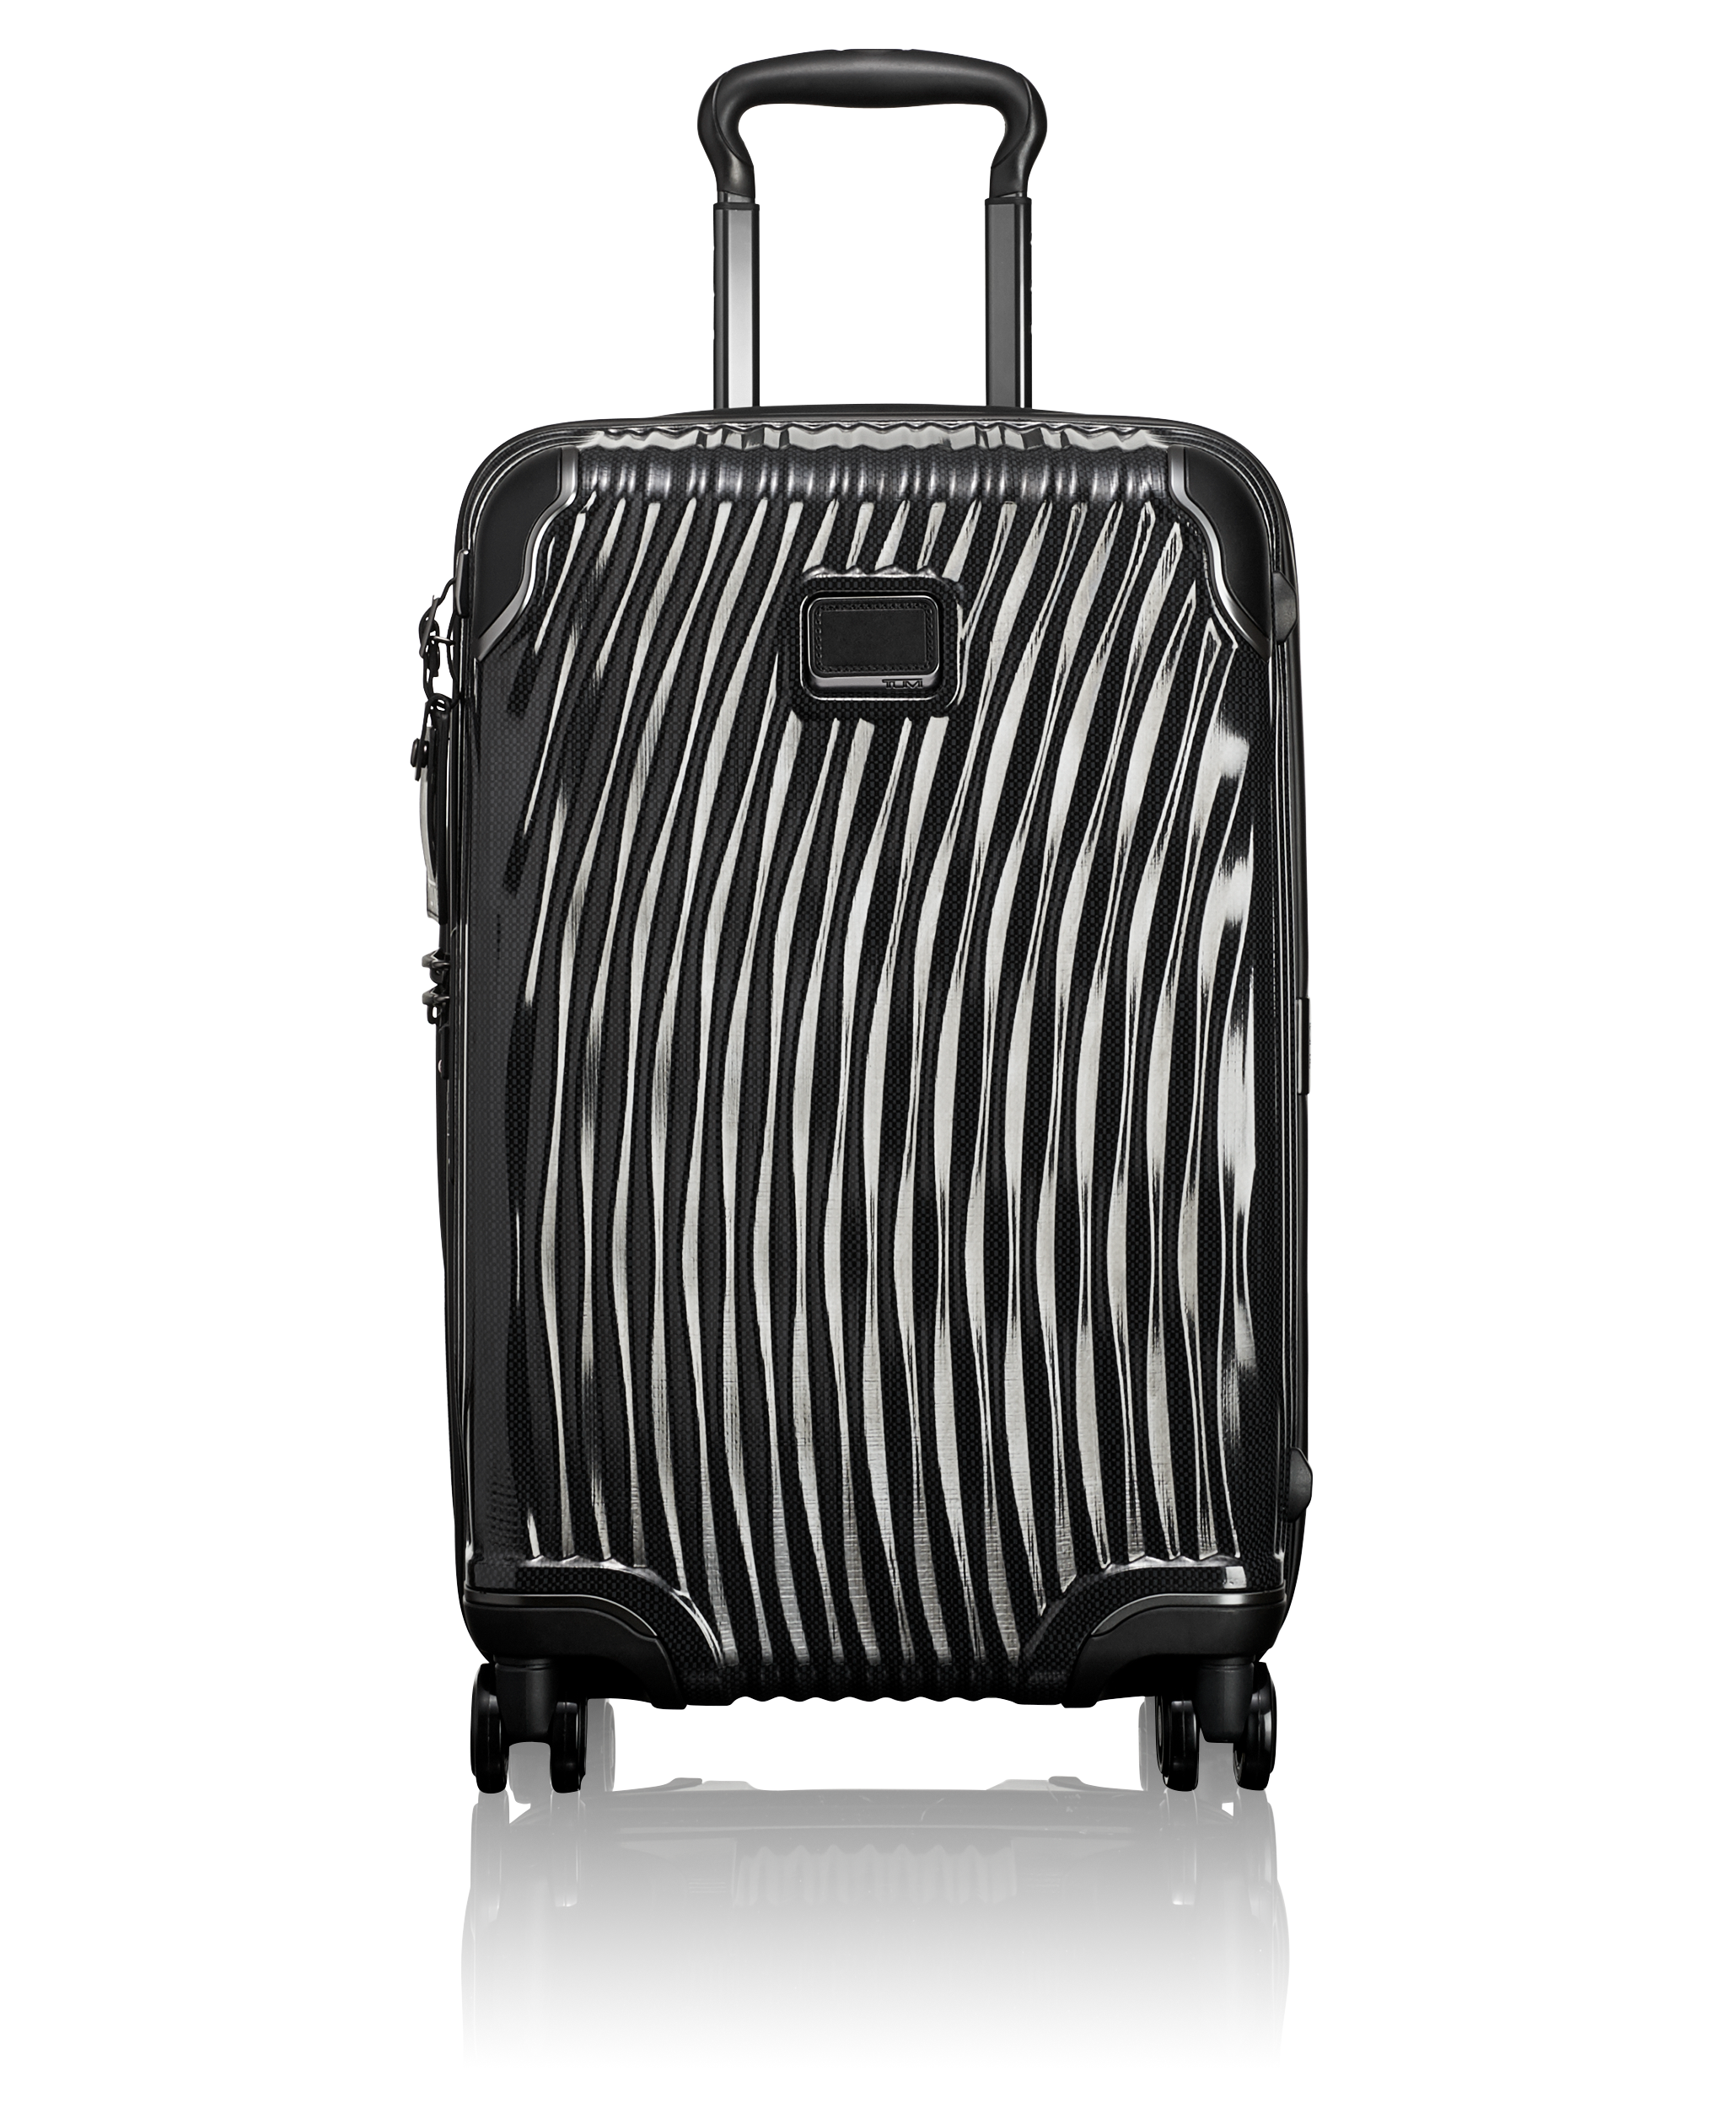 TUMI's Latitude shown in black